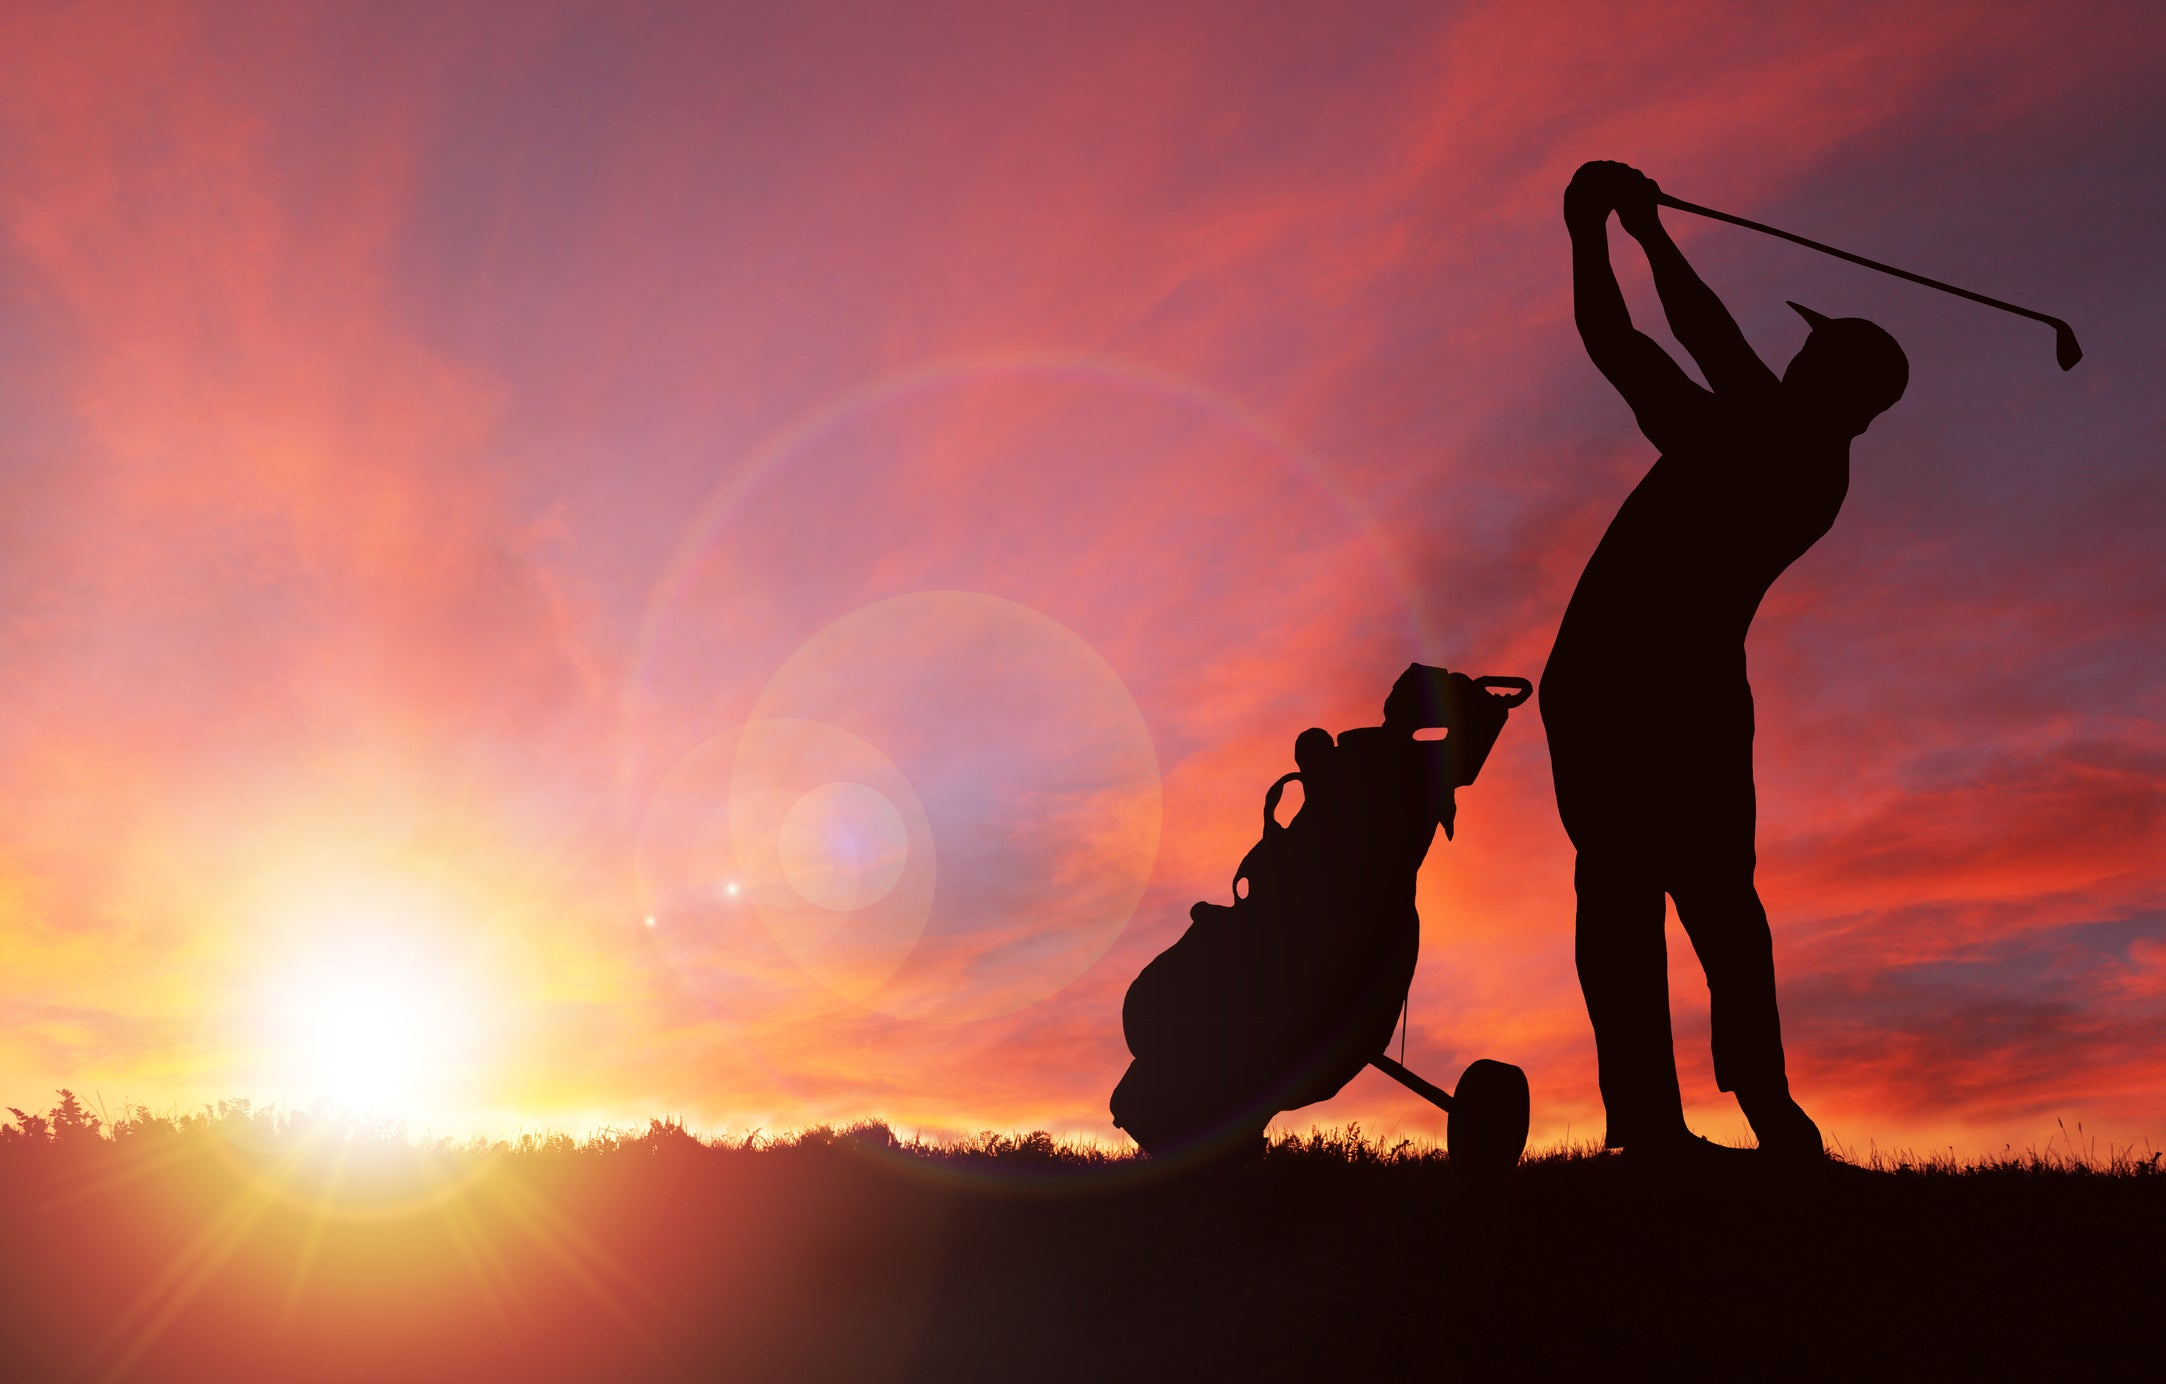 A golfer swings next to his bag at sunset.